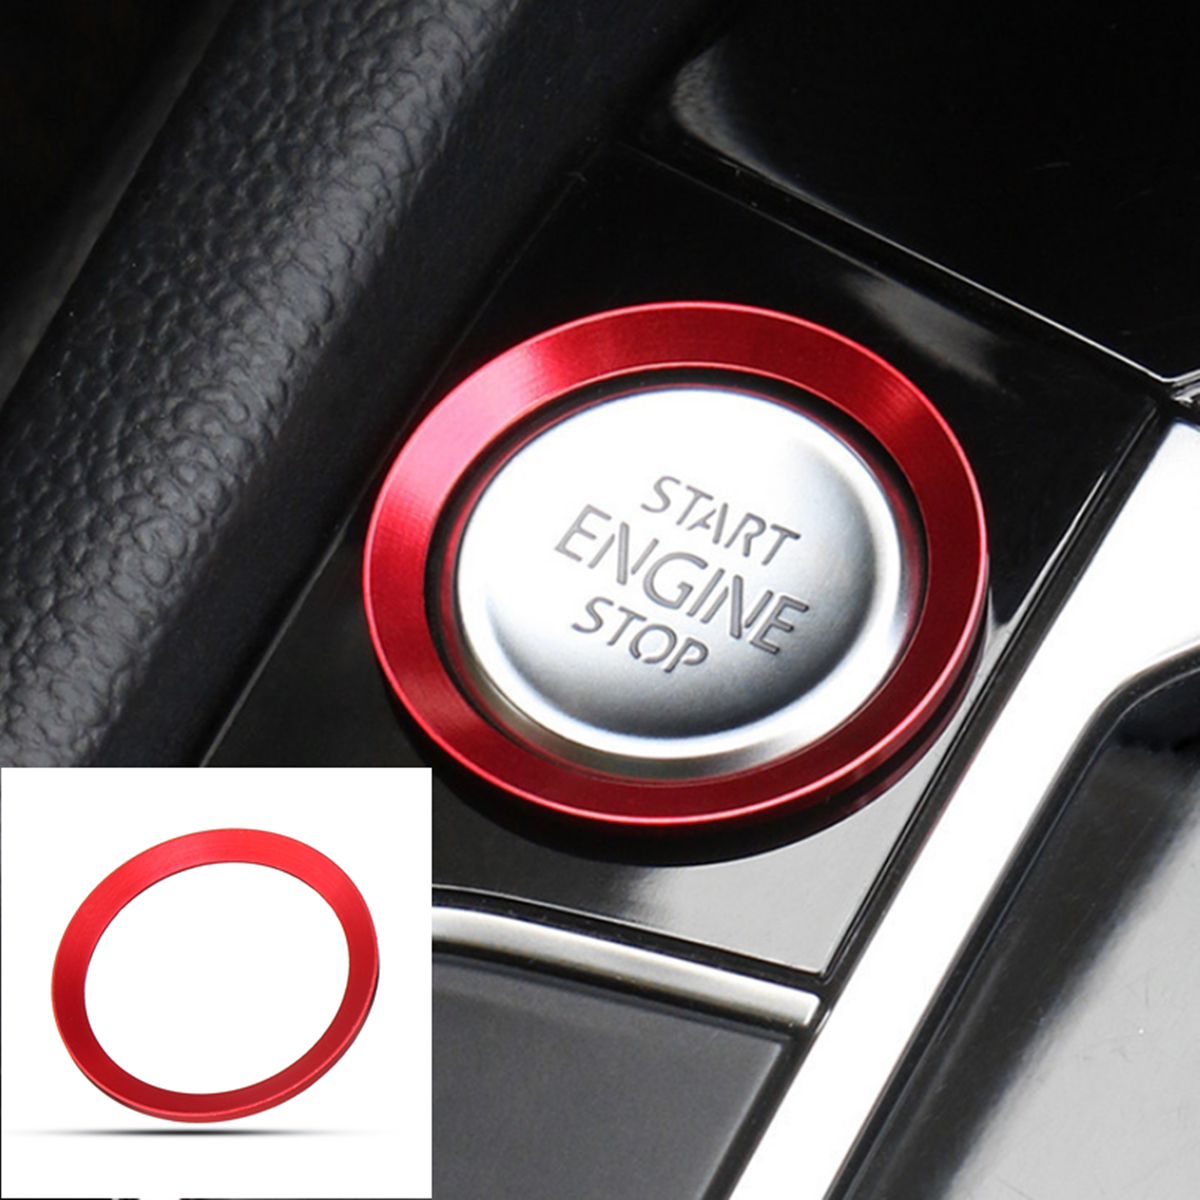 Car Start Engine Stop Button Cover Trim Red for VW Golf 7 MK7 GTI R Jetta CC Arteon